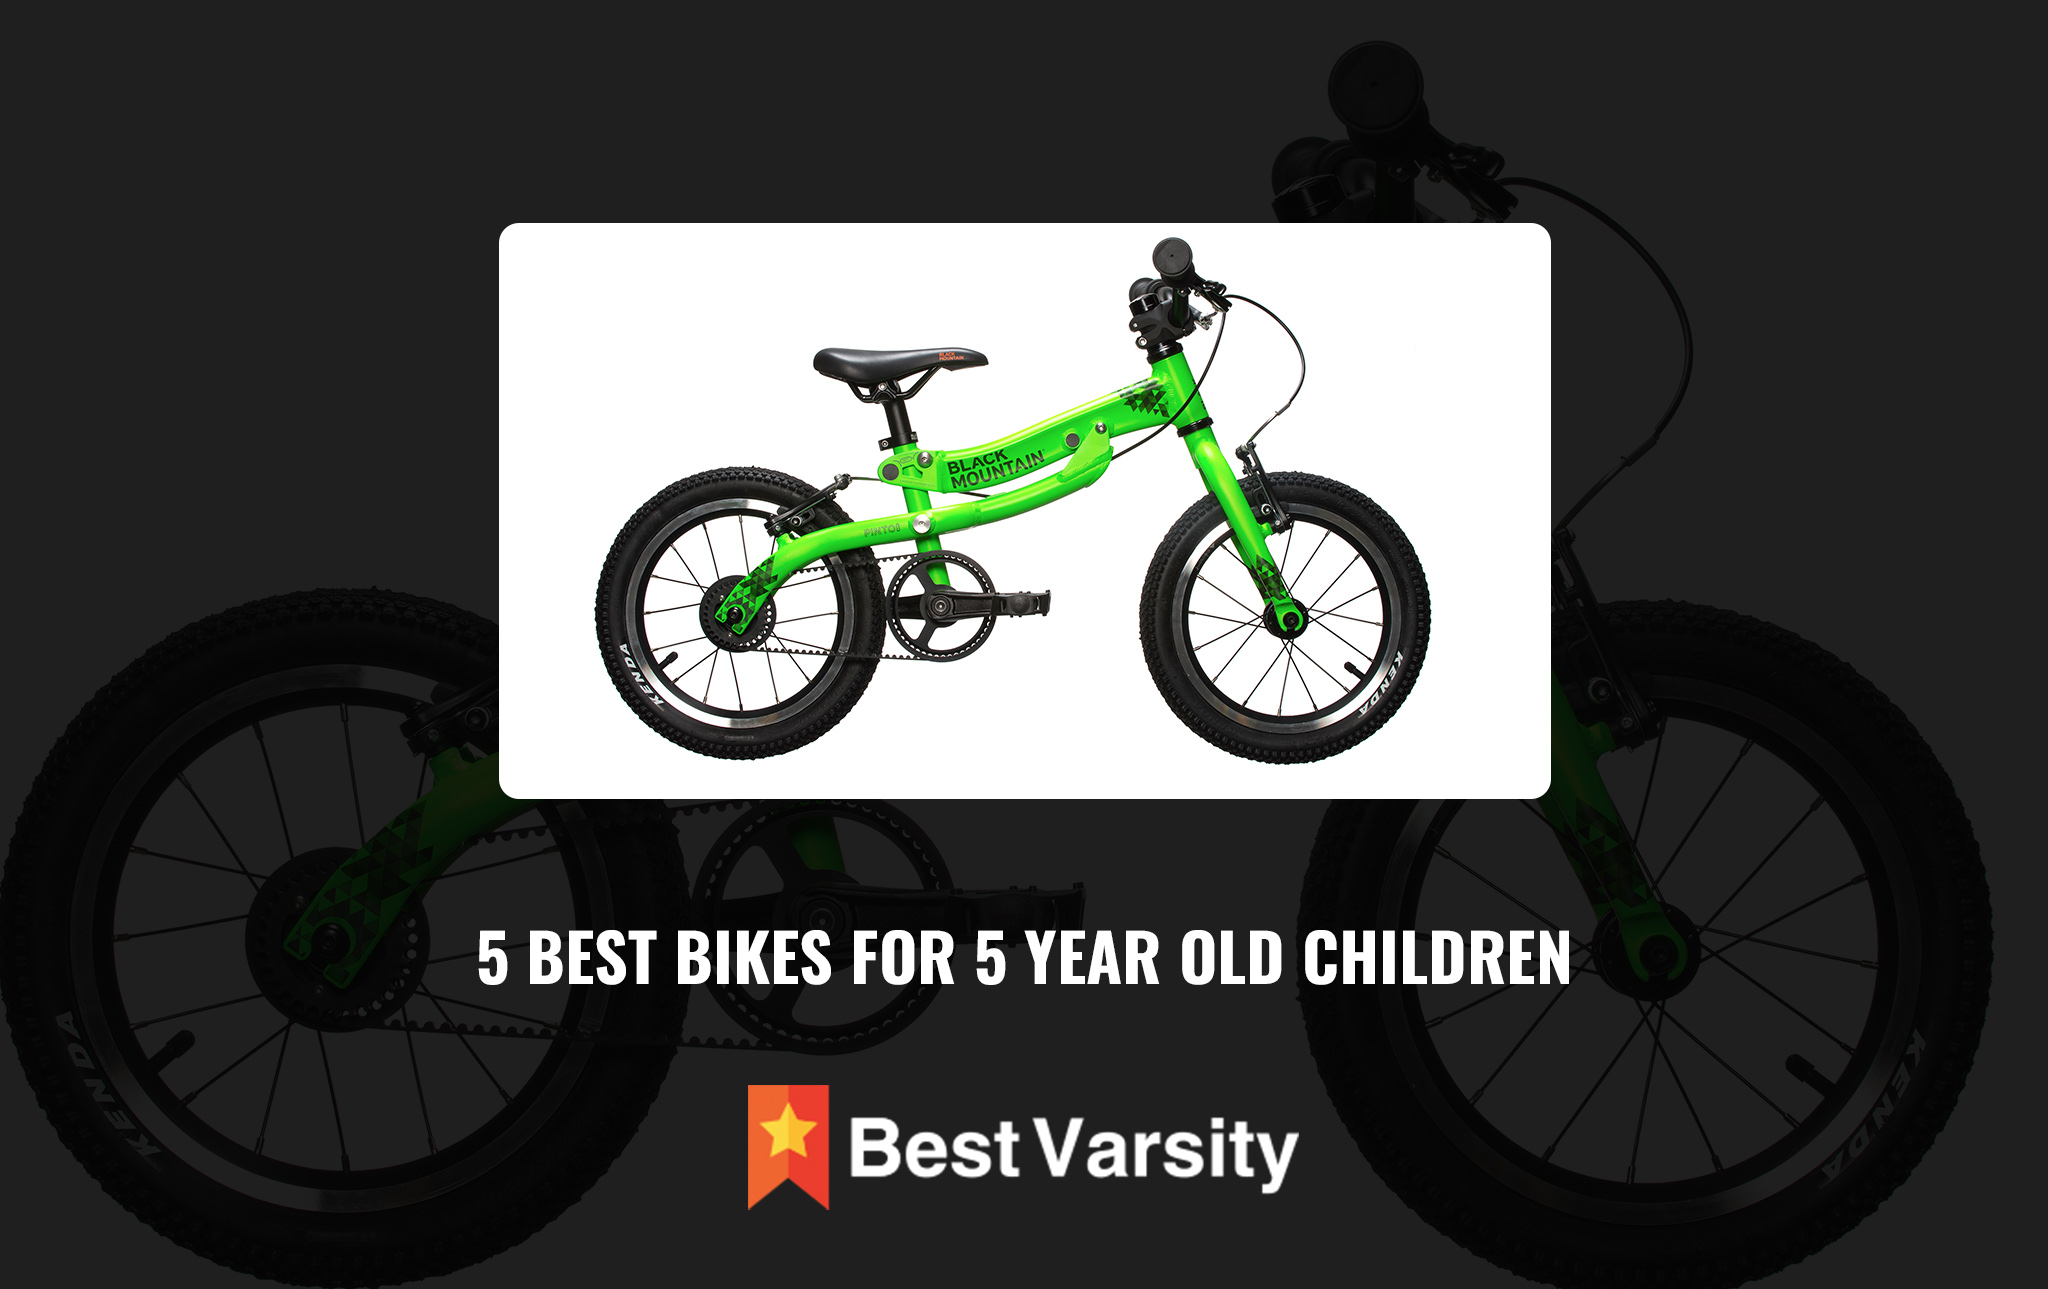 5 Best Bikes for 5 Year Old Children